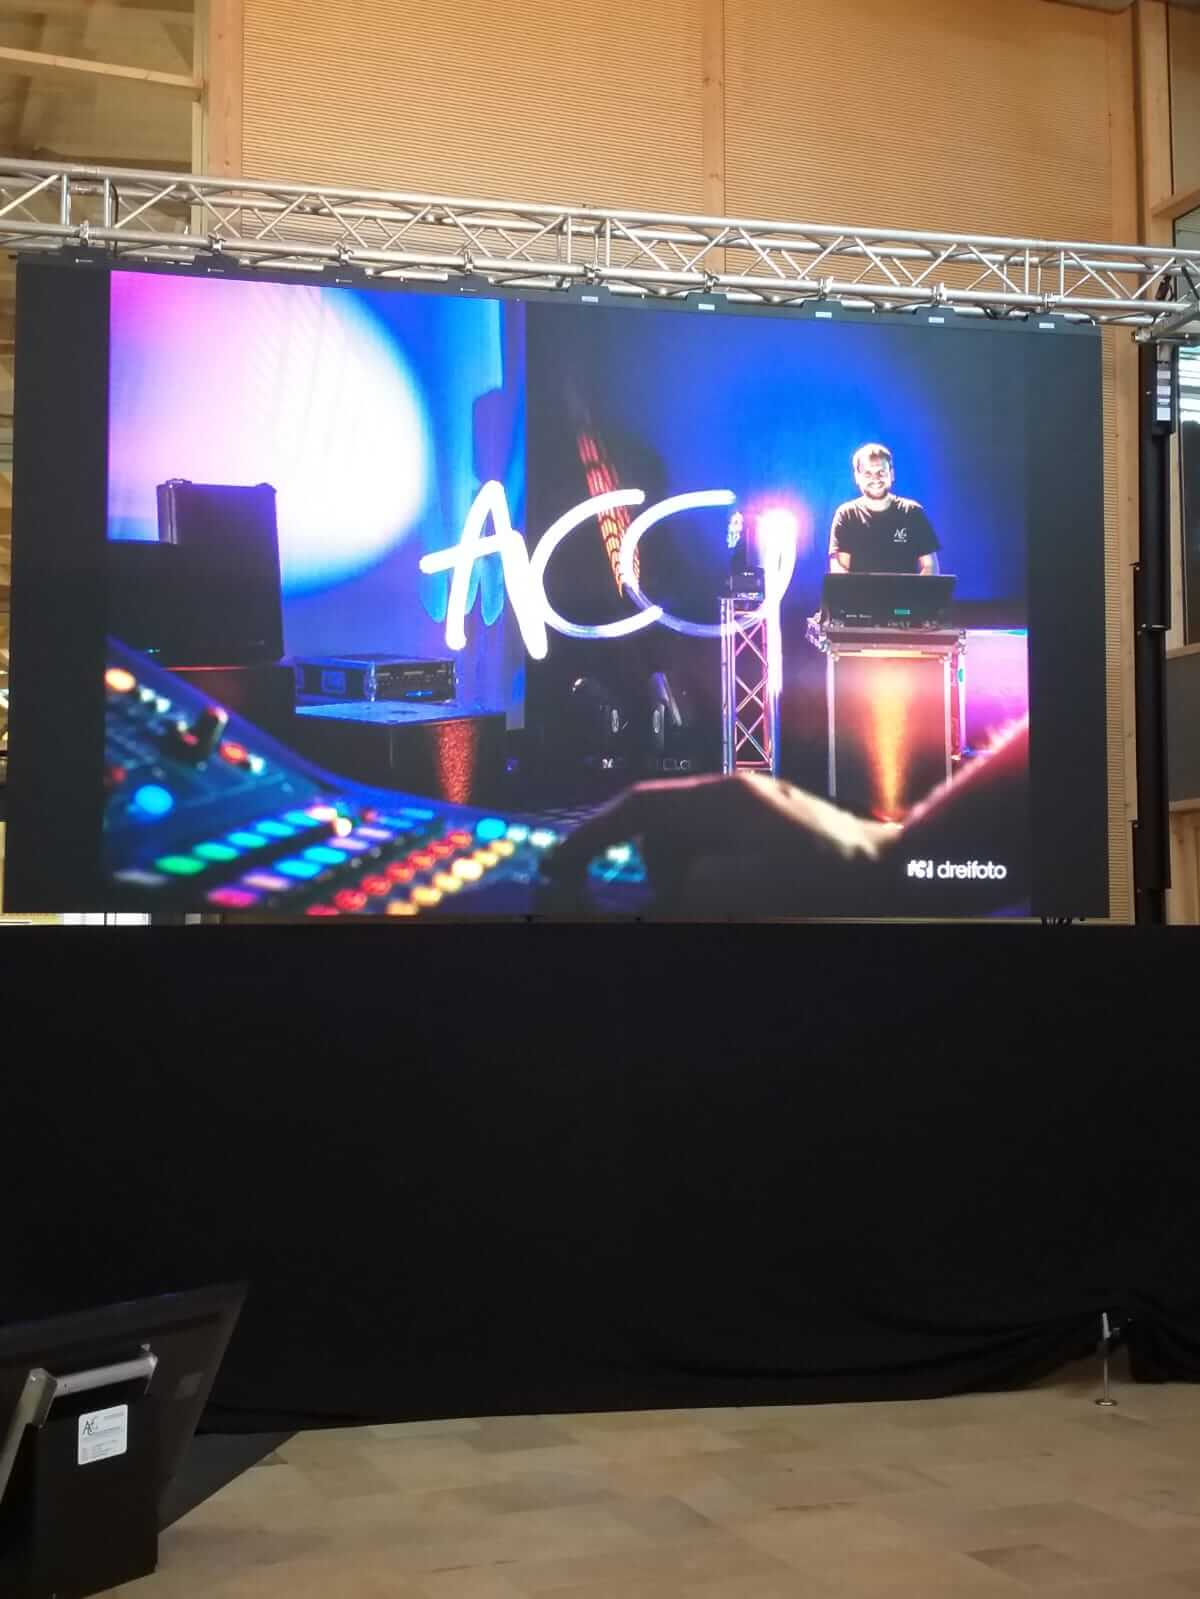 ETWT Messe Hawangen Led Screen